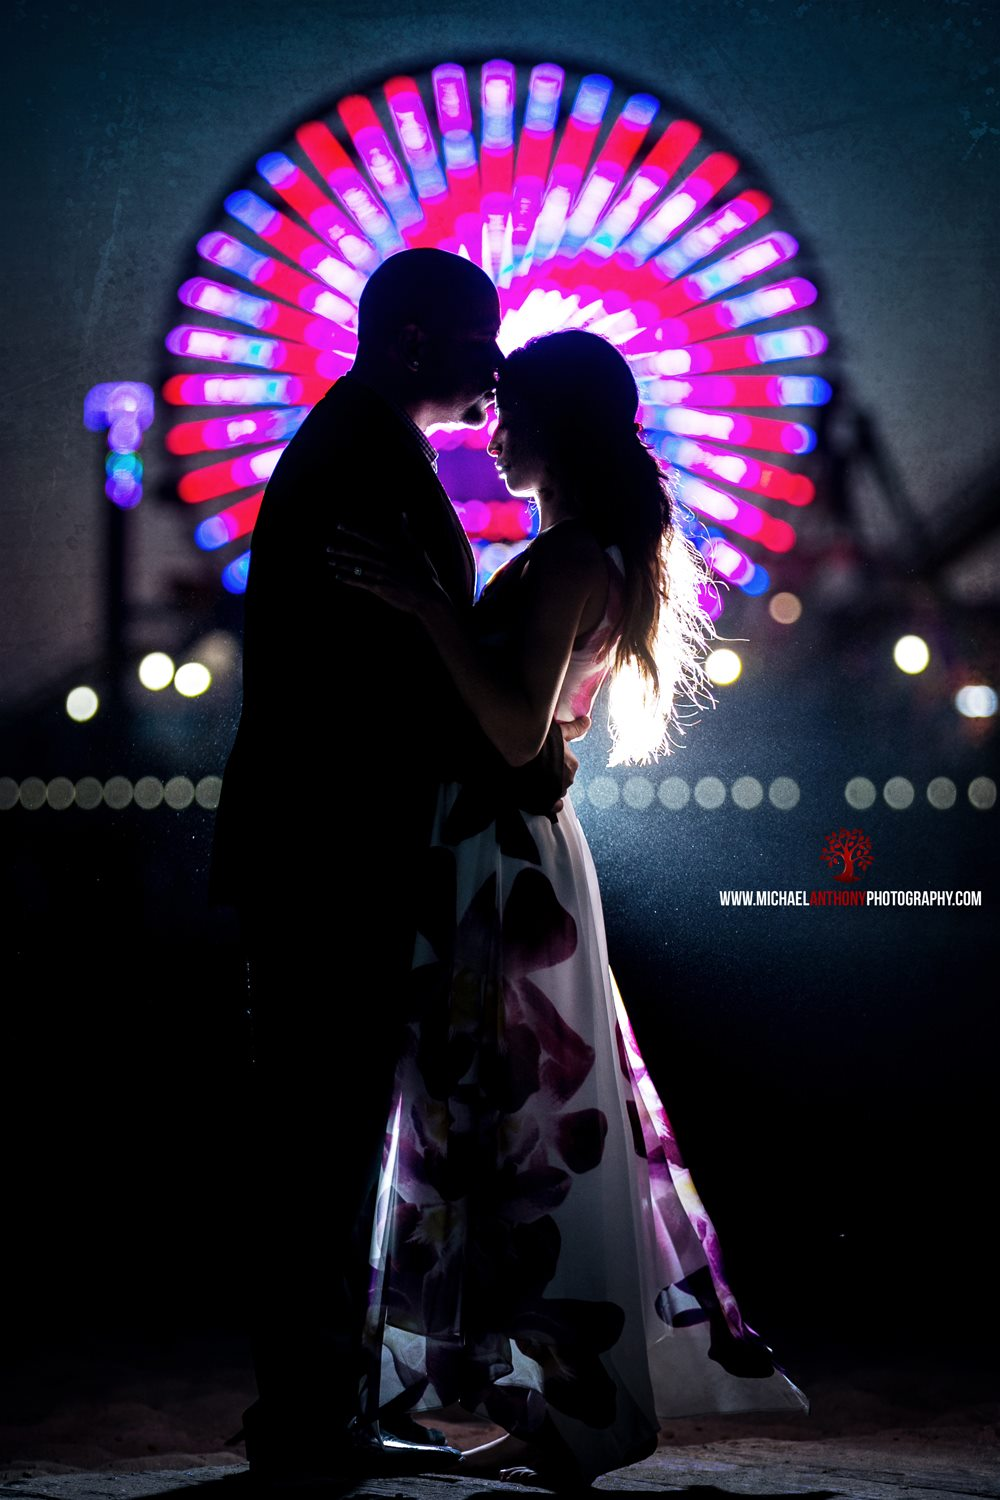 Engagement Photography in Santa Monica next to the ferris wheel